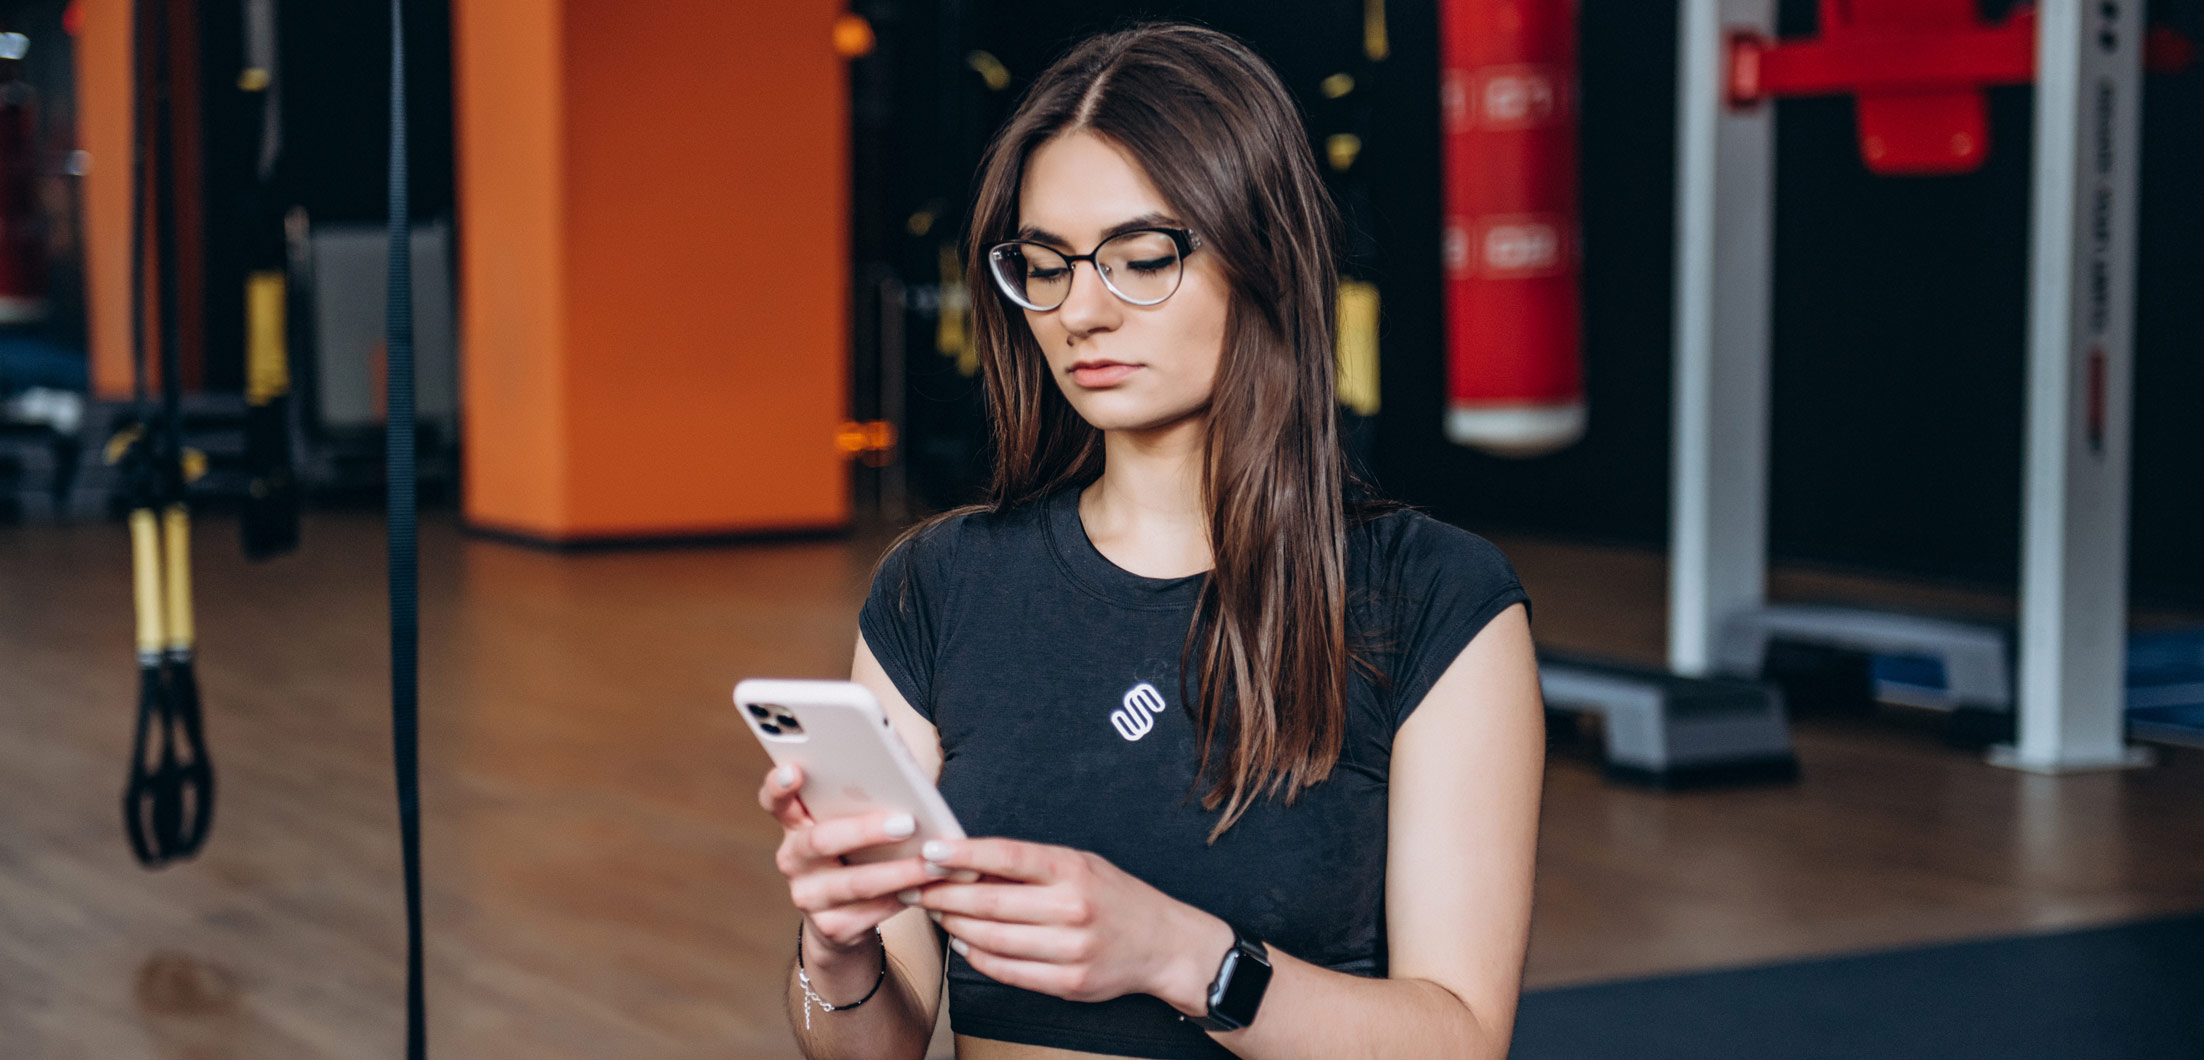 A personal training client looking at a fitness program on their phone